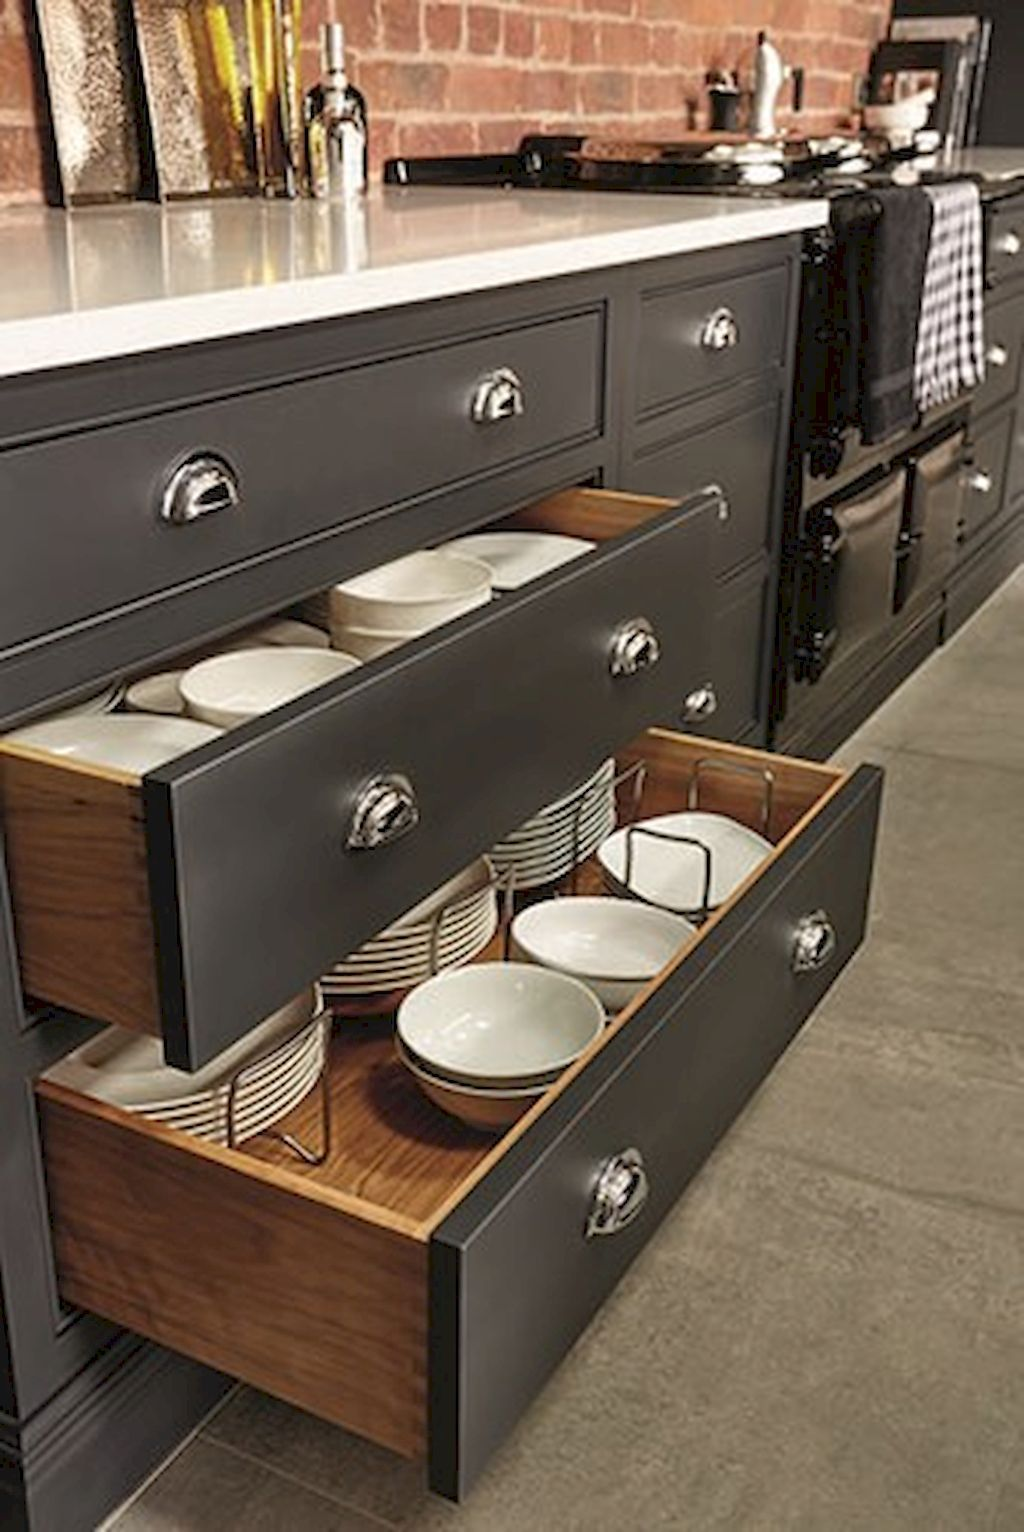 Nice 100 Brilliant Kitchen Ideas Organization On A Budget Https Coachdecor Com 100 Bri Industrial Style Kitchen Clever Kitchen Storage Galley Kitchen Remodel